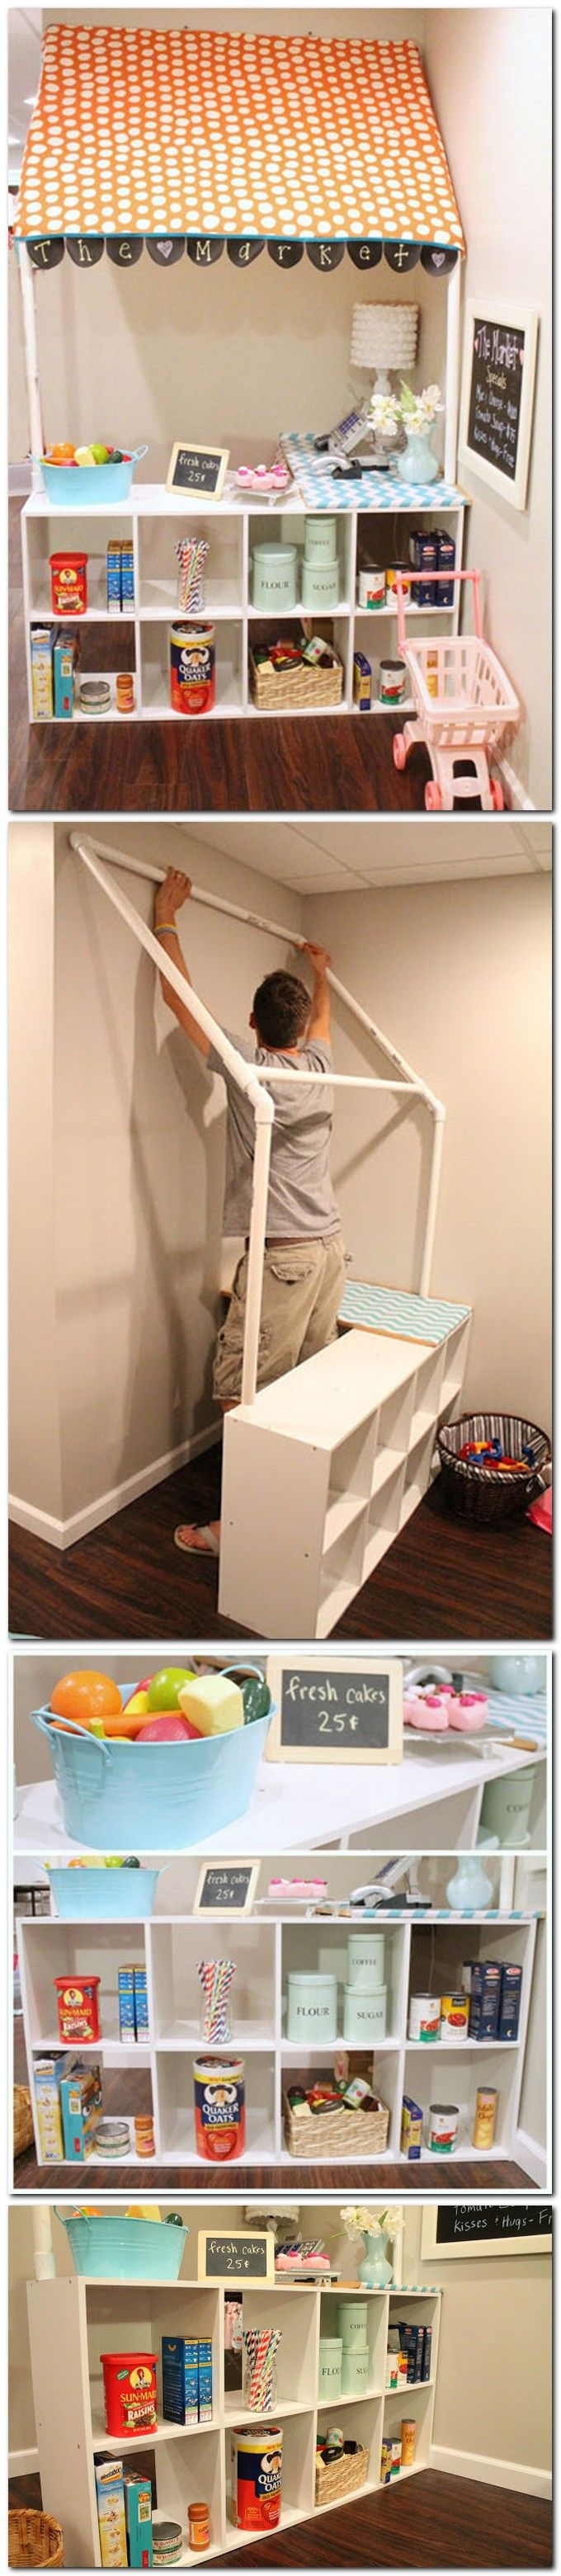 DIY children's grocery store--such a fun idea for a basement or playroom